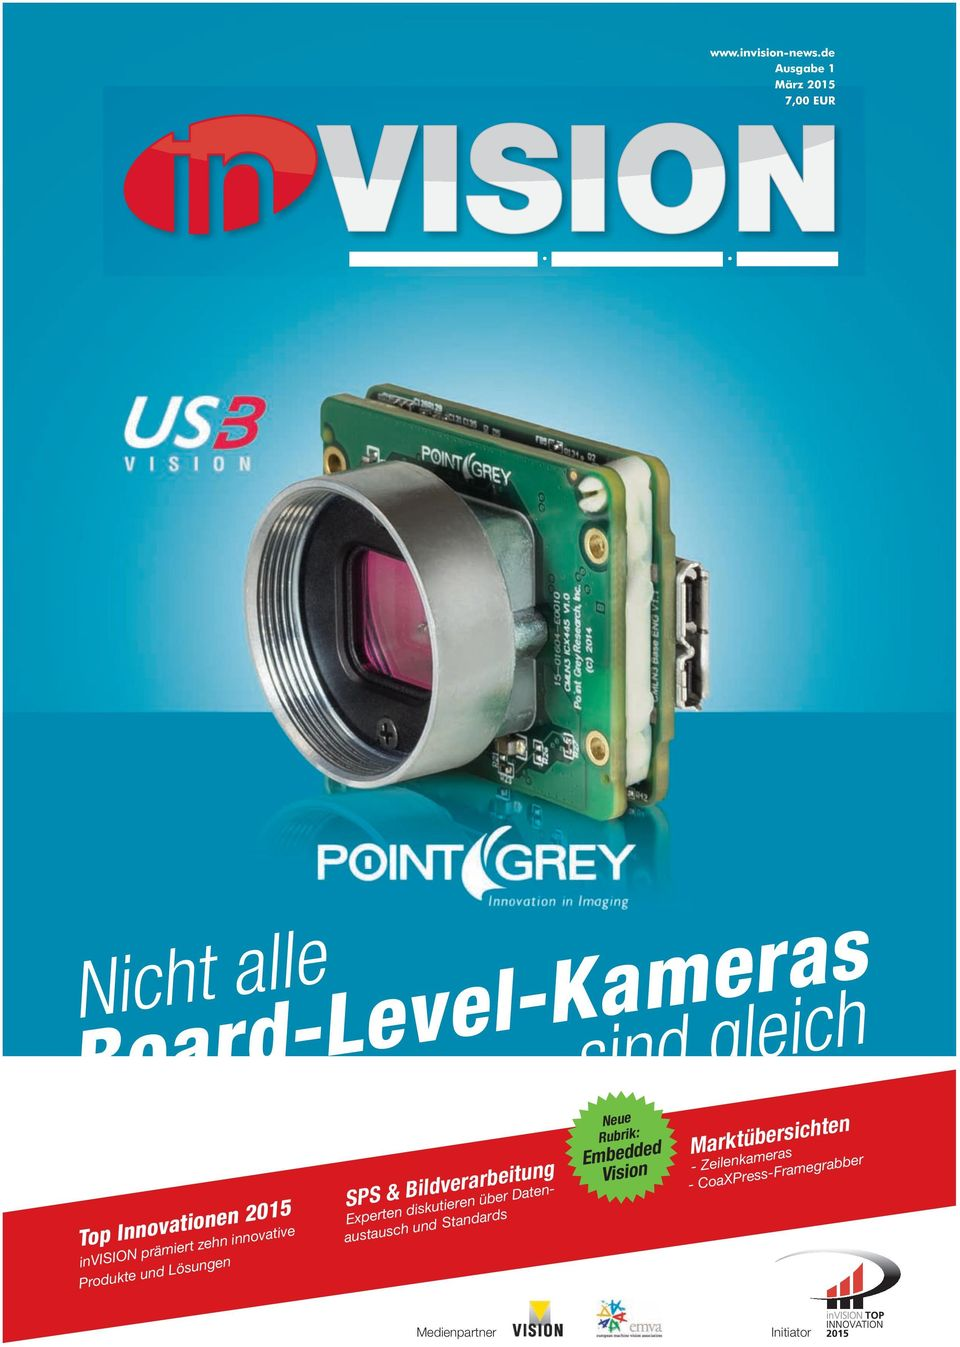 Board-Level-Kameras Top Innovationen 2015 invision prämiert zehn innovative Produkte und Lösungen